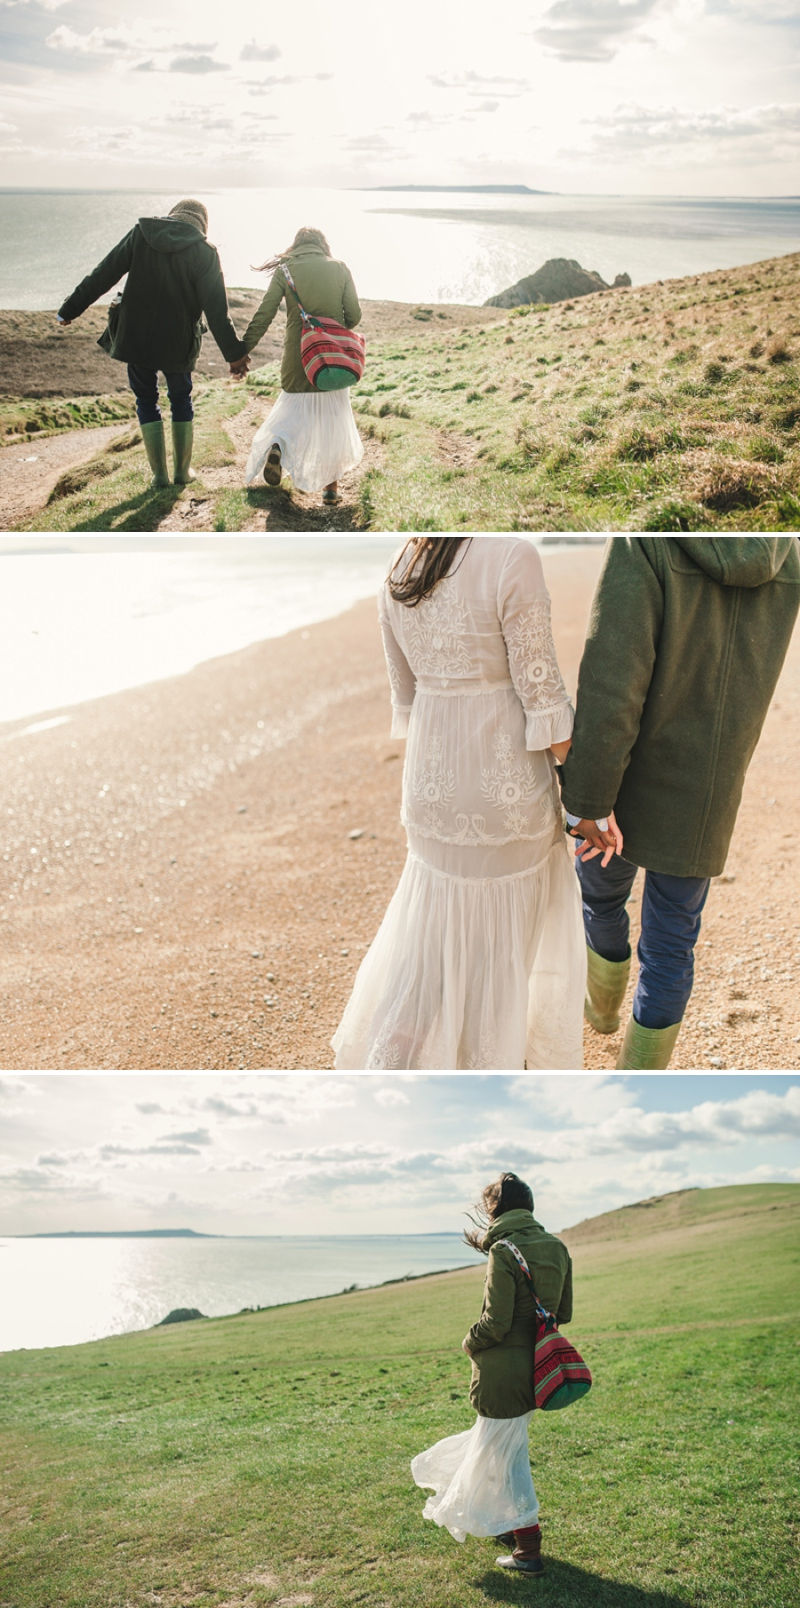 A coastal engagement shoot by Rebekah Murray 0562 A Magical Day.